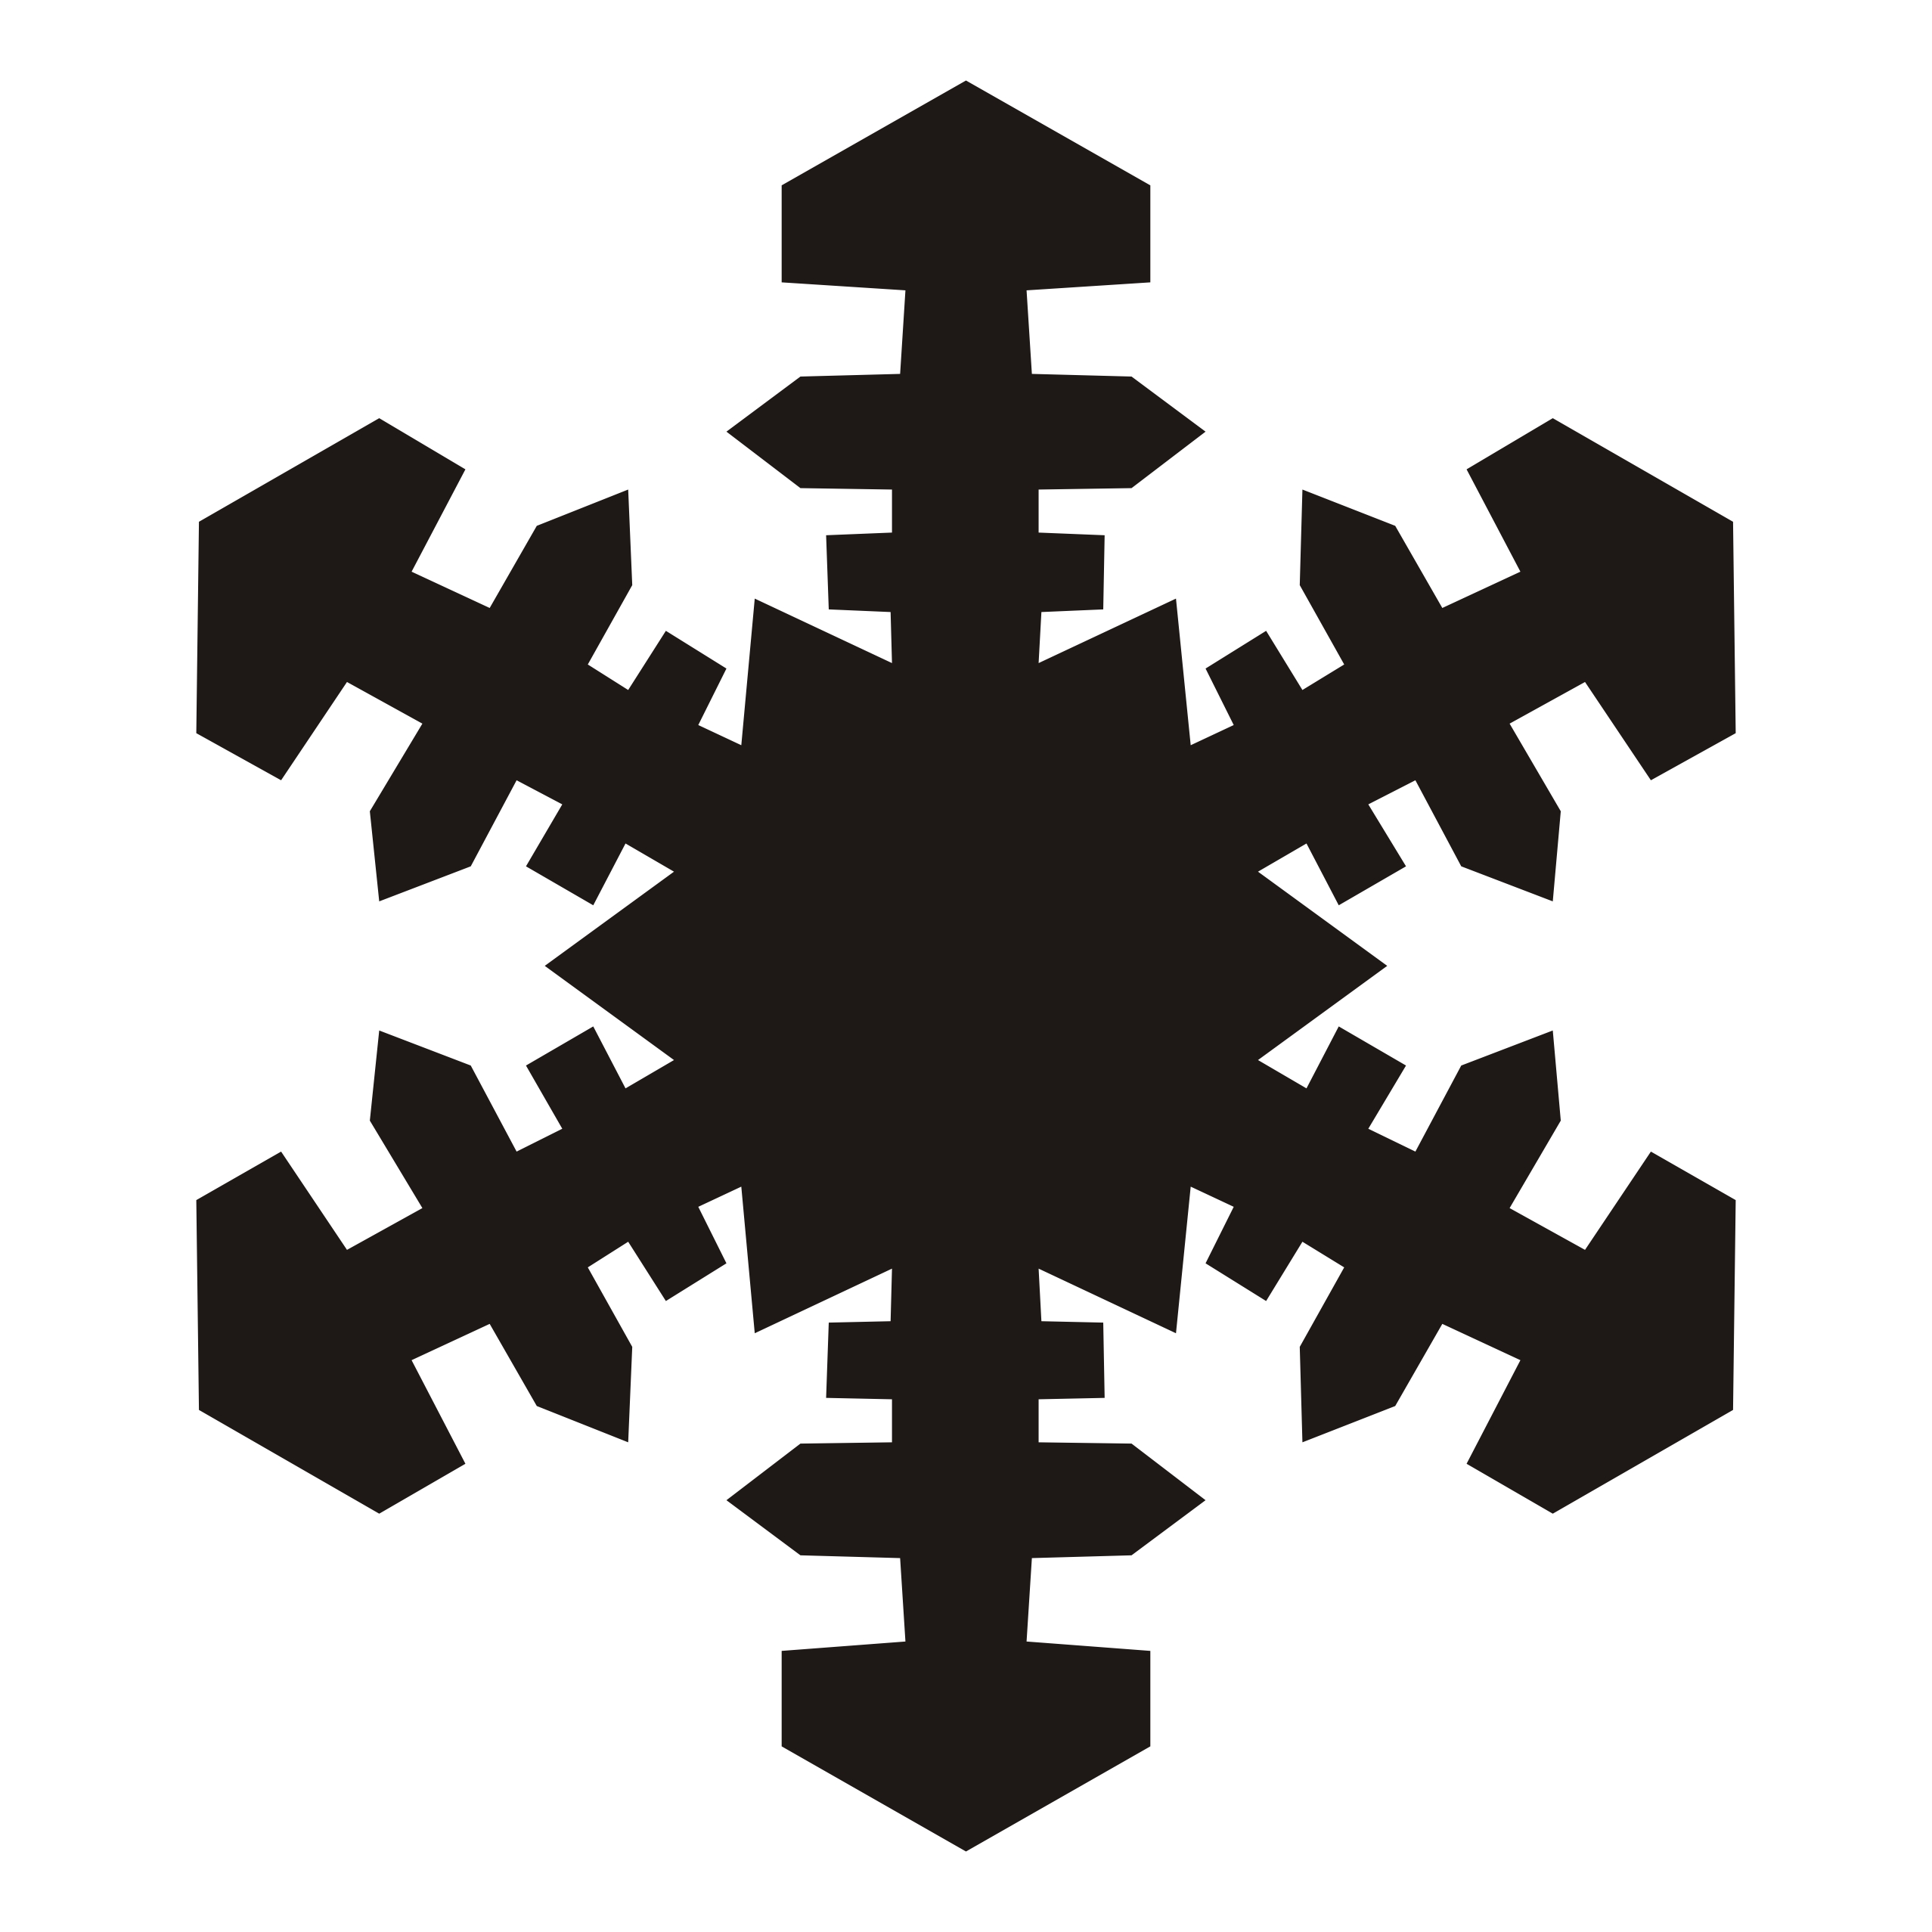 Snowflake on kids nose clipart graphic transparent stock snowflake symbol - Google Search | Snowflakes ❅ ❄ ❆ | Pinterest ... graphic transparent stock